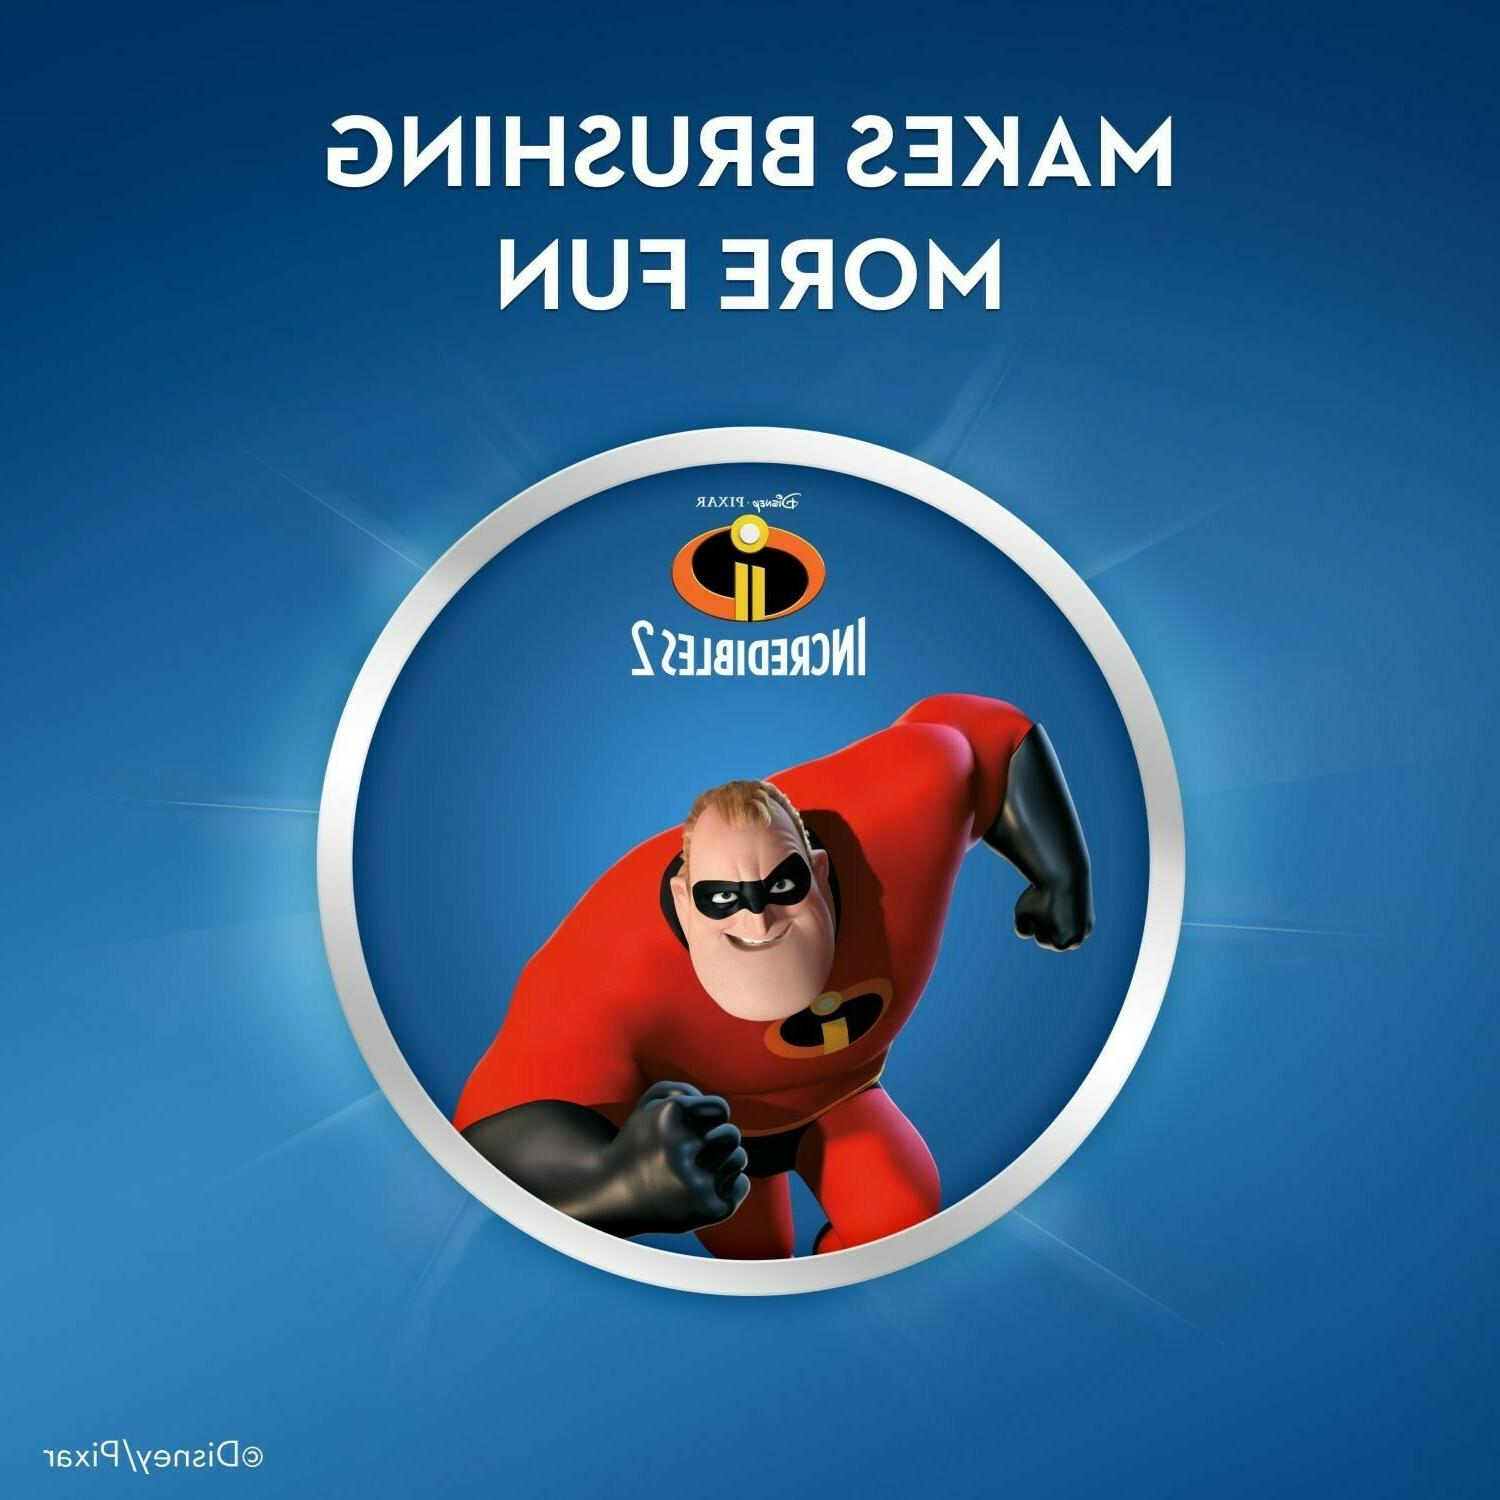 Oral-B Electric Toothbrush Incredibles 2 a Great for